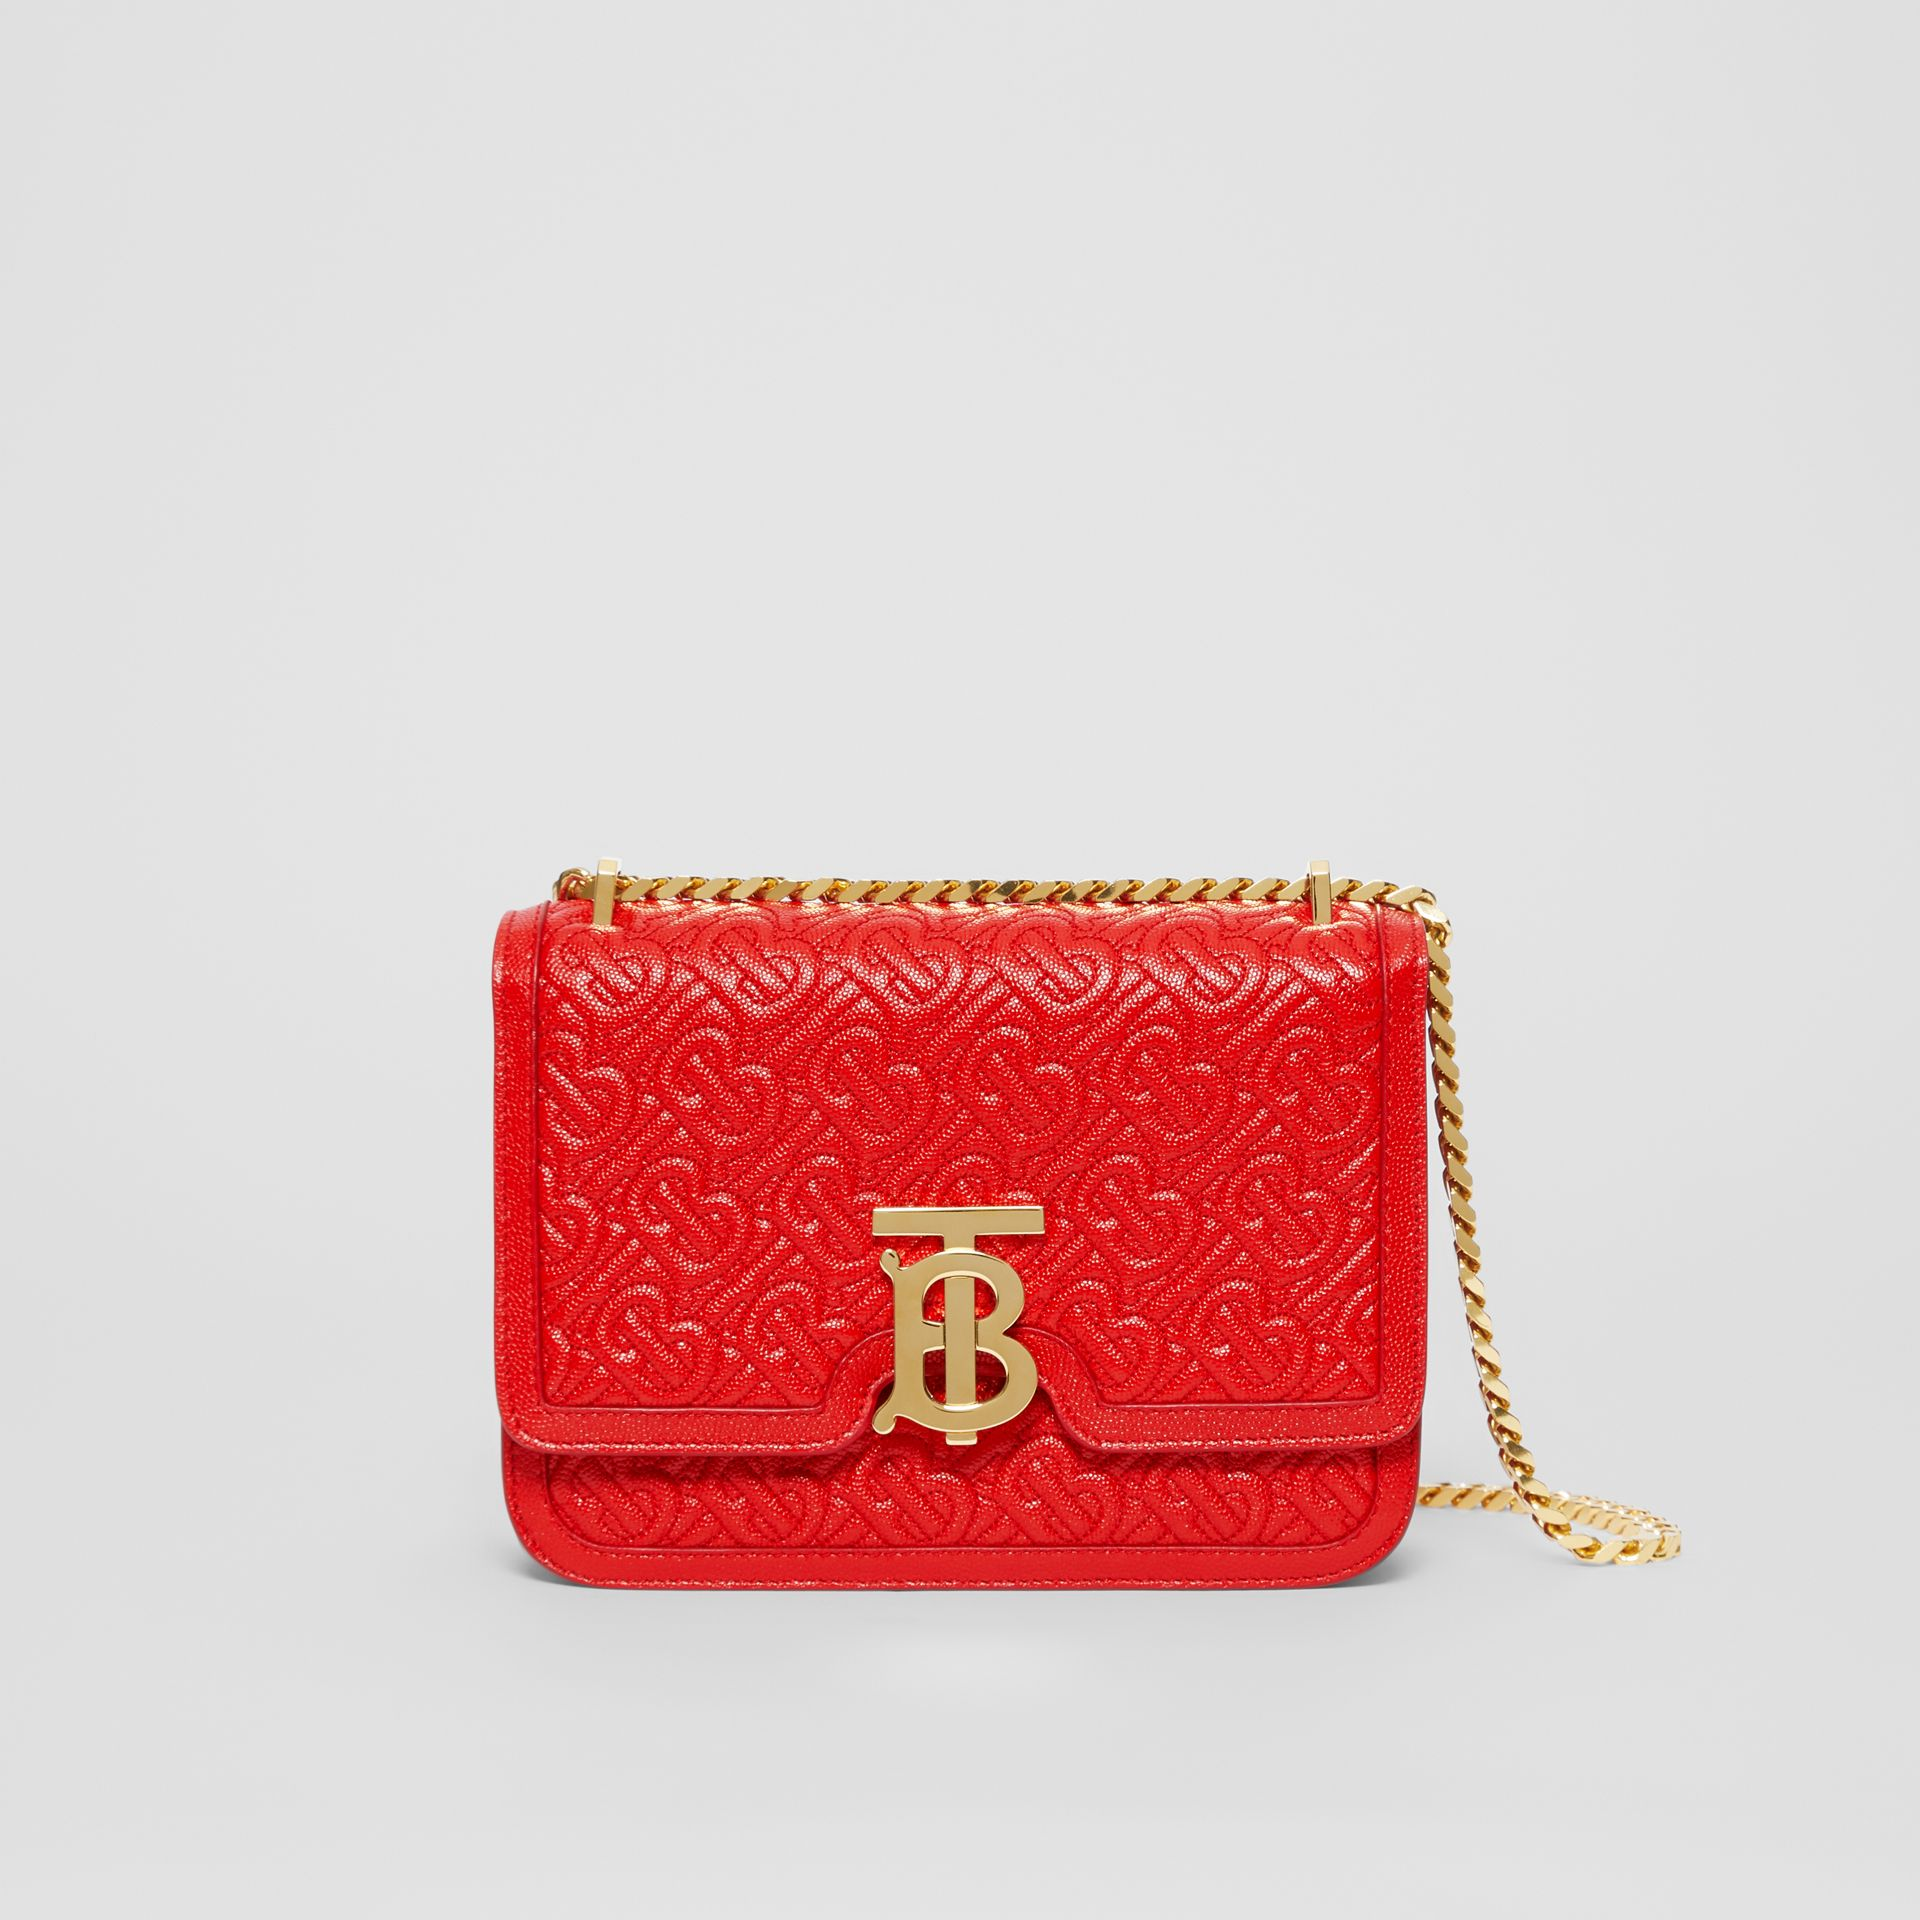 Small Quilted Monogram Leather TB Bag in Bright Red - Women | Burberry United States - gallery image 0